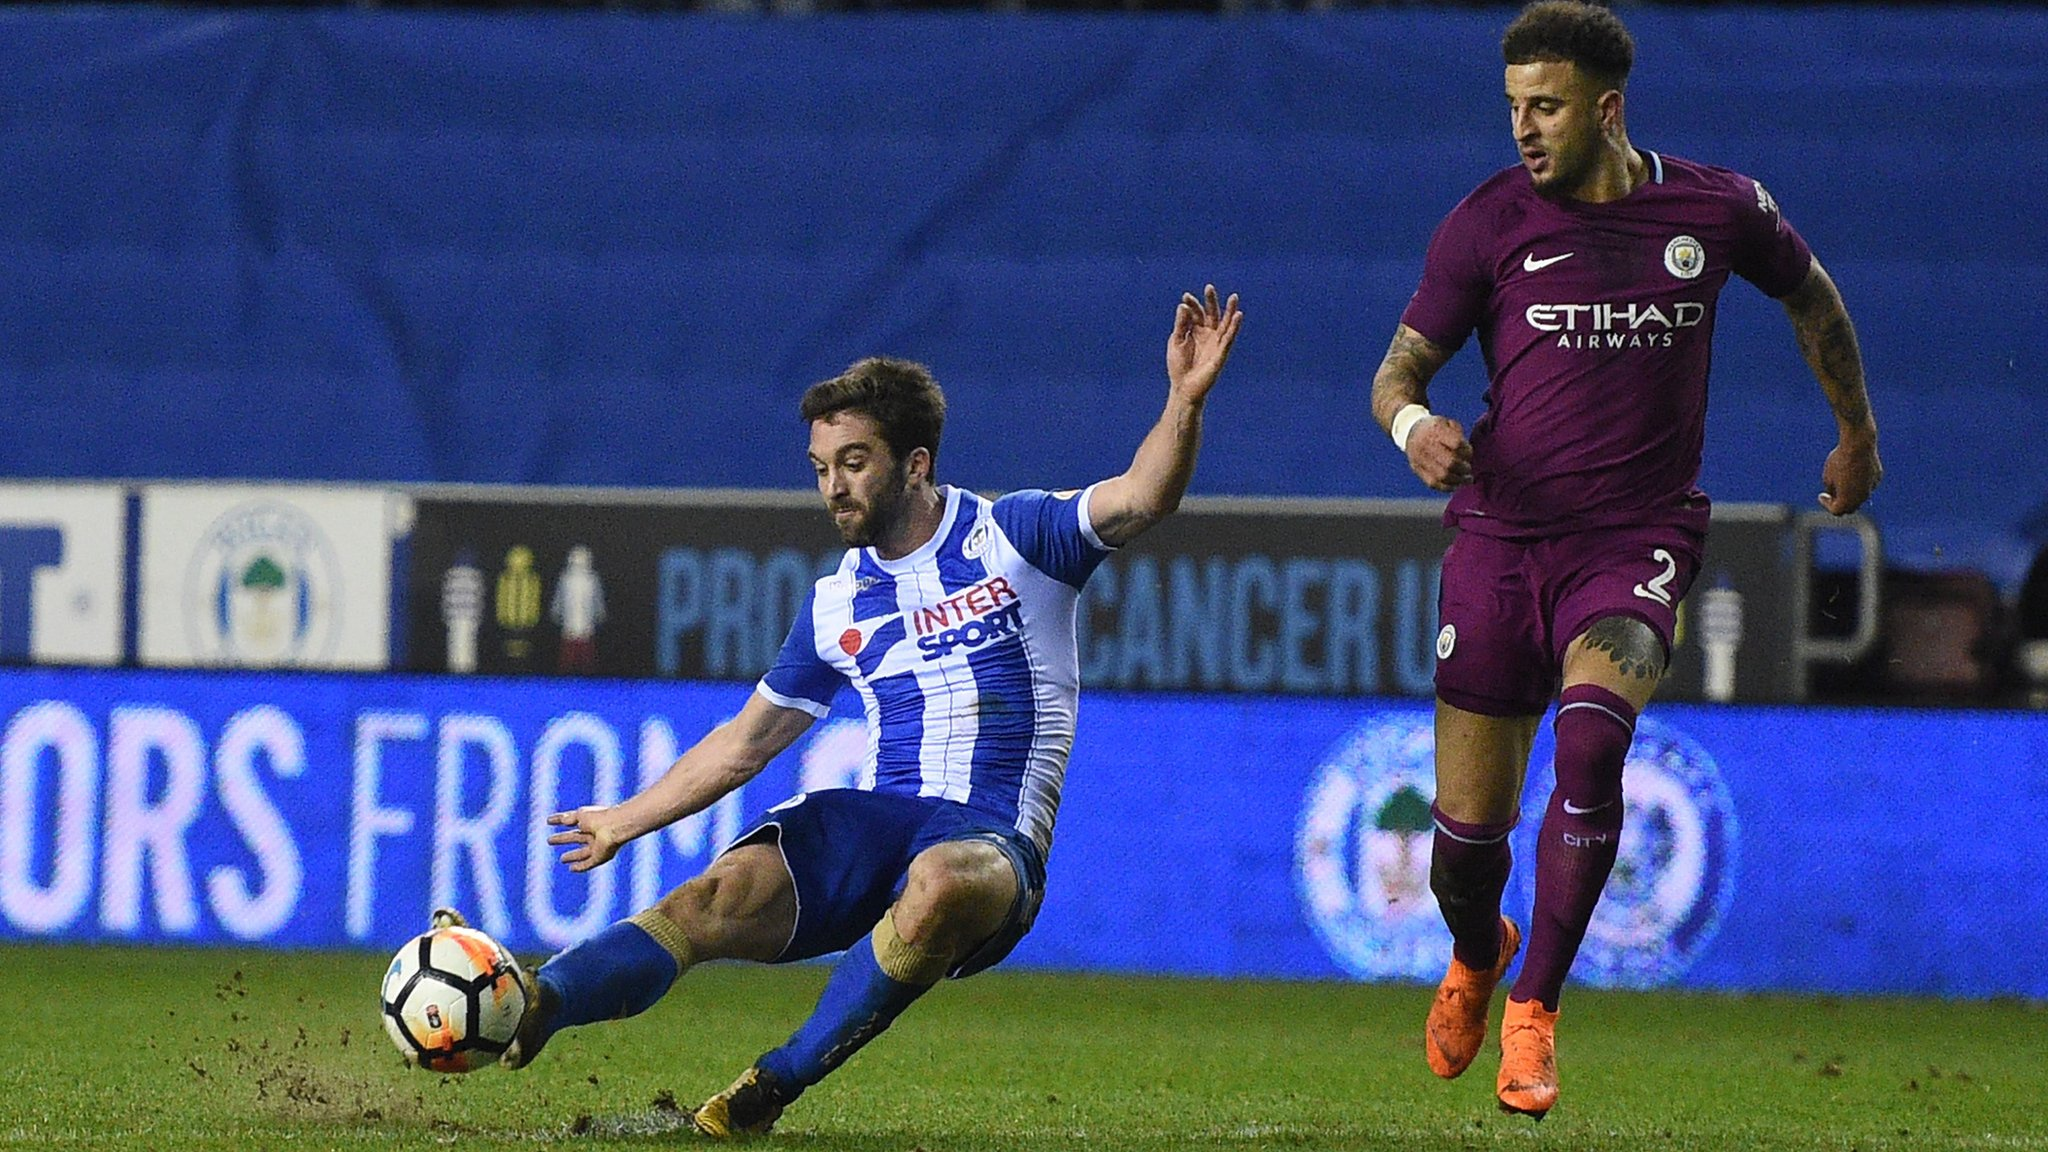 FA Cup: Will Grigg's goal against Manchester City send Wigan into quarter-finals